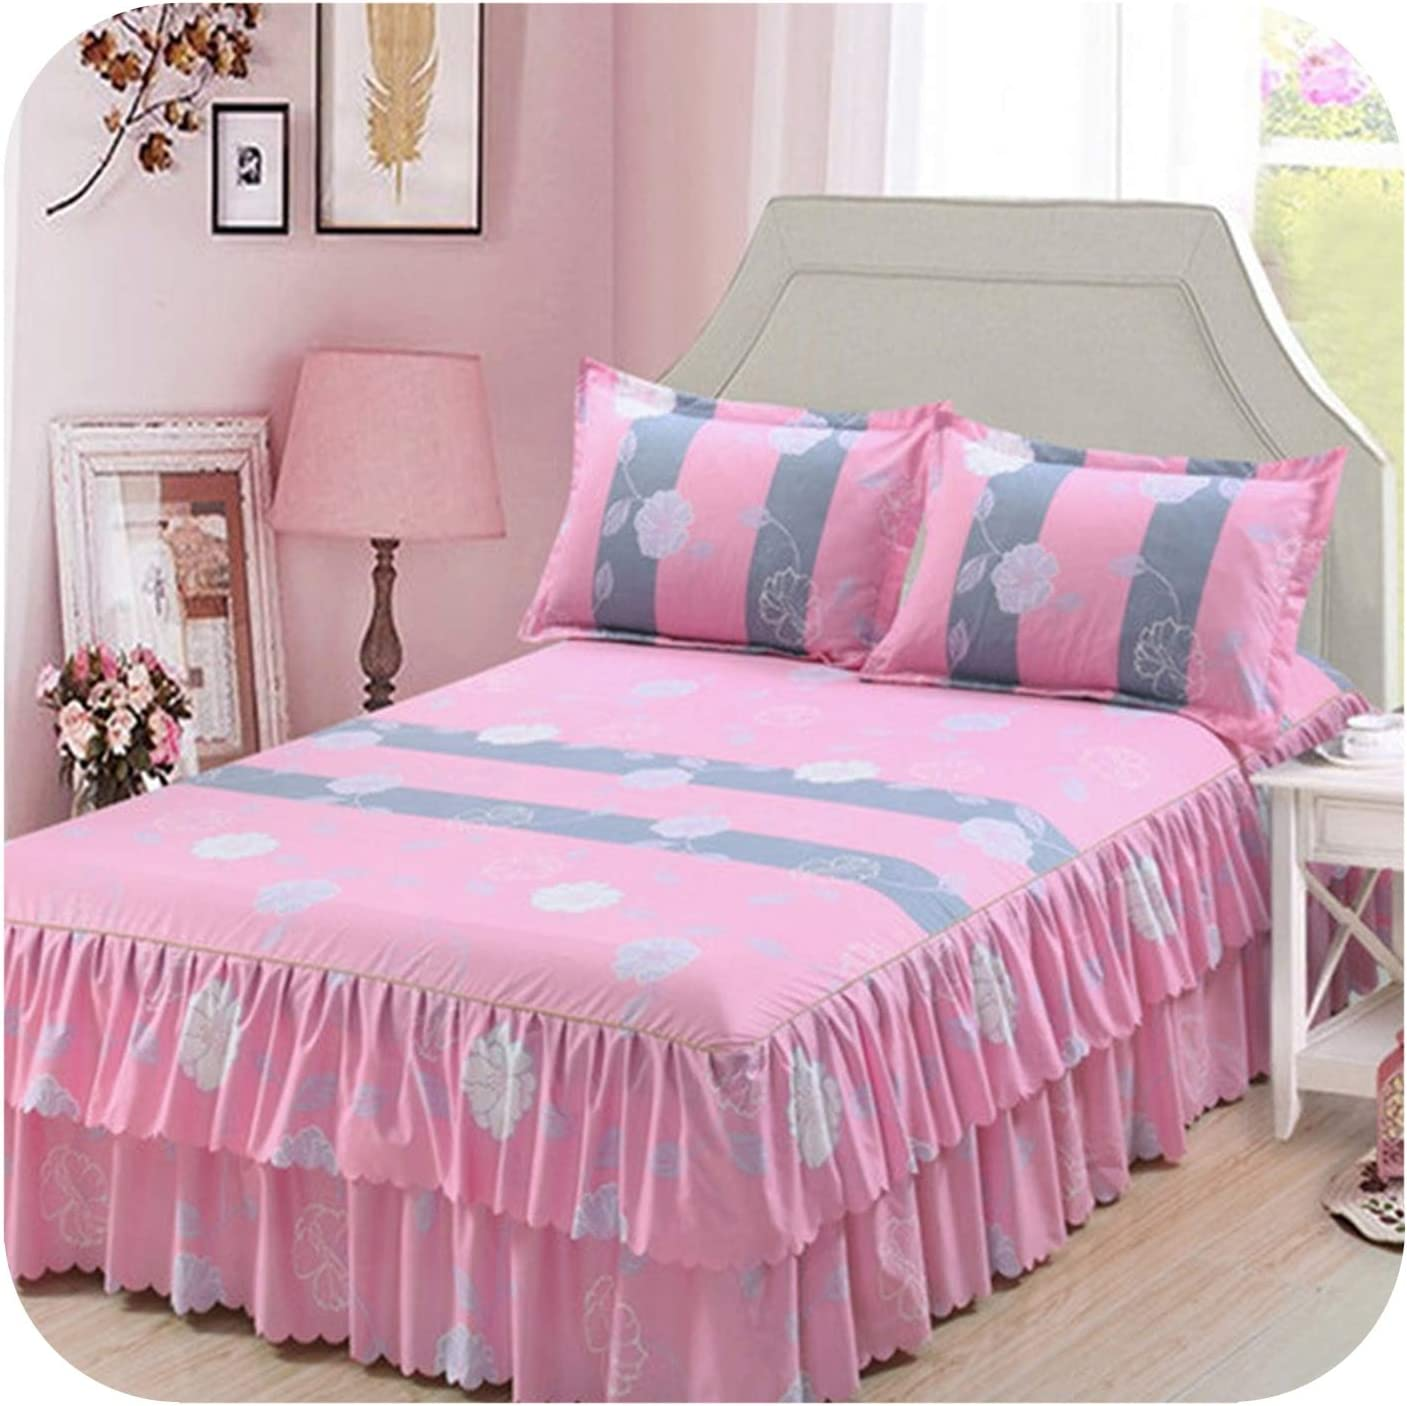 Classic Double Layer Bed Skirt Bedding Set Flower Printing Skirts Bed Linen 3pcs/Set Pastoral Bed Sheet Home Textile Pillowcase,6,180x200CM